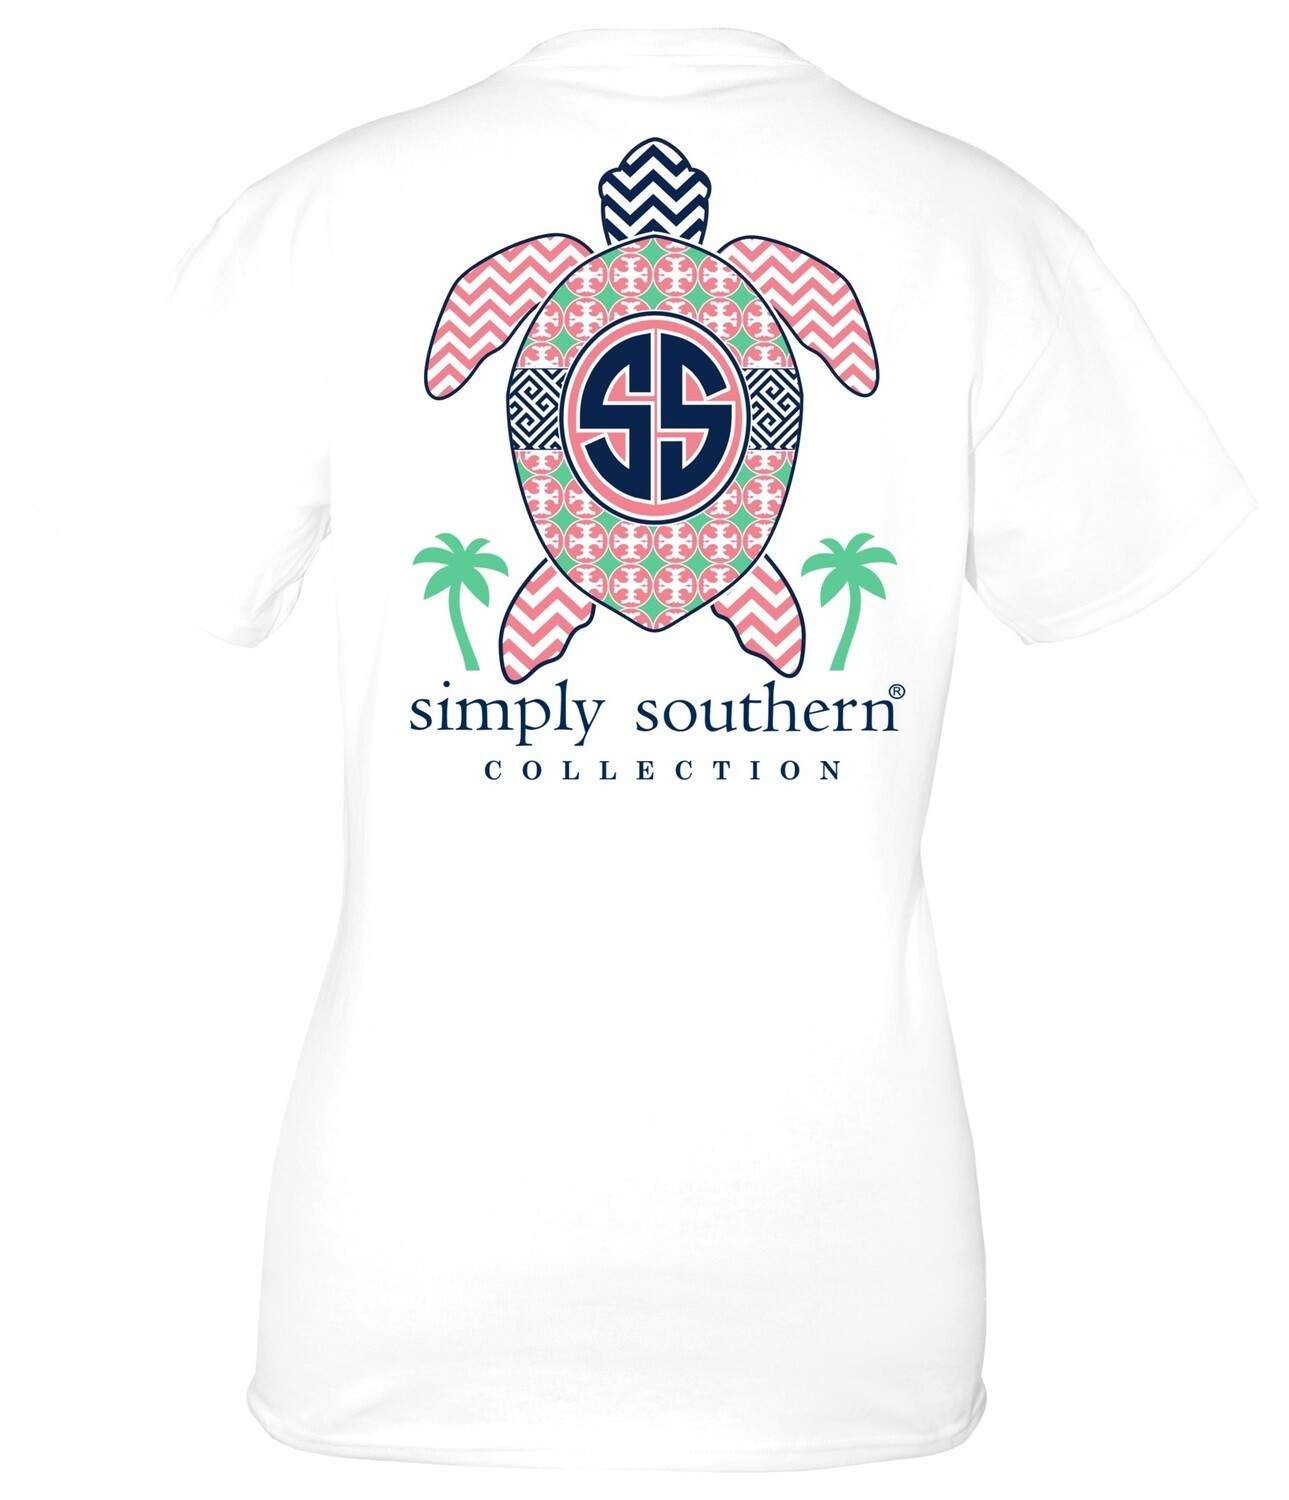 Simply Southern SS Tee (21)